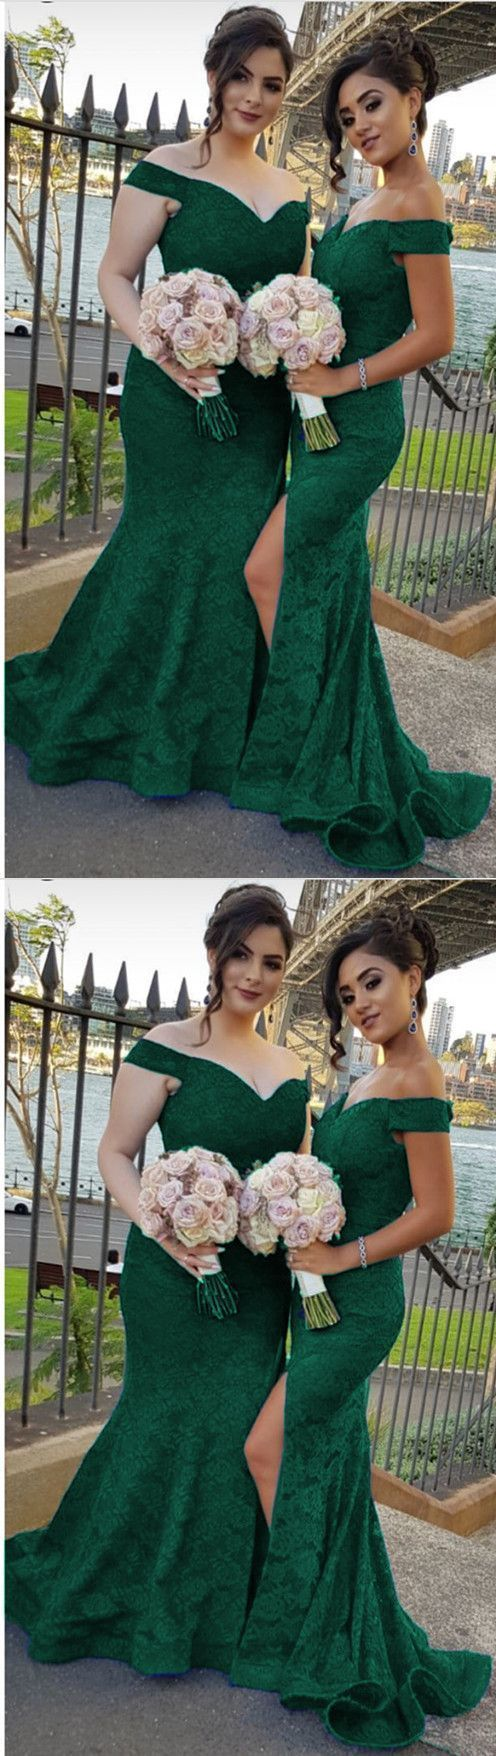 Green bridesmaid dresses, v-neck off the shoulder mermaid formal gowns for